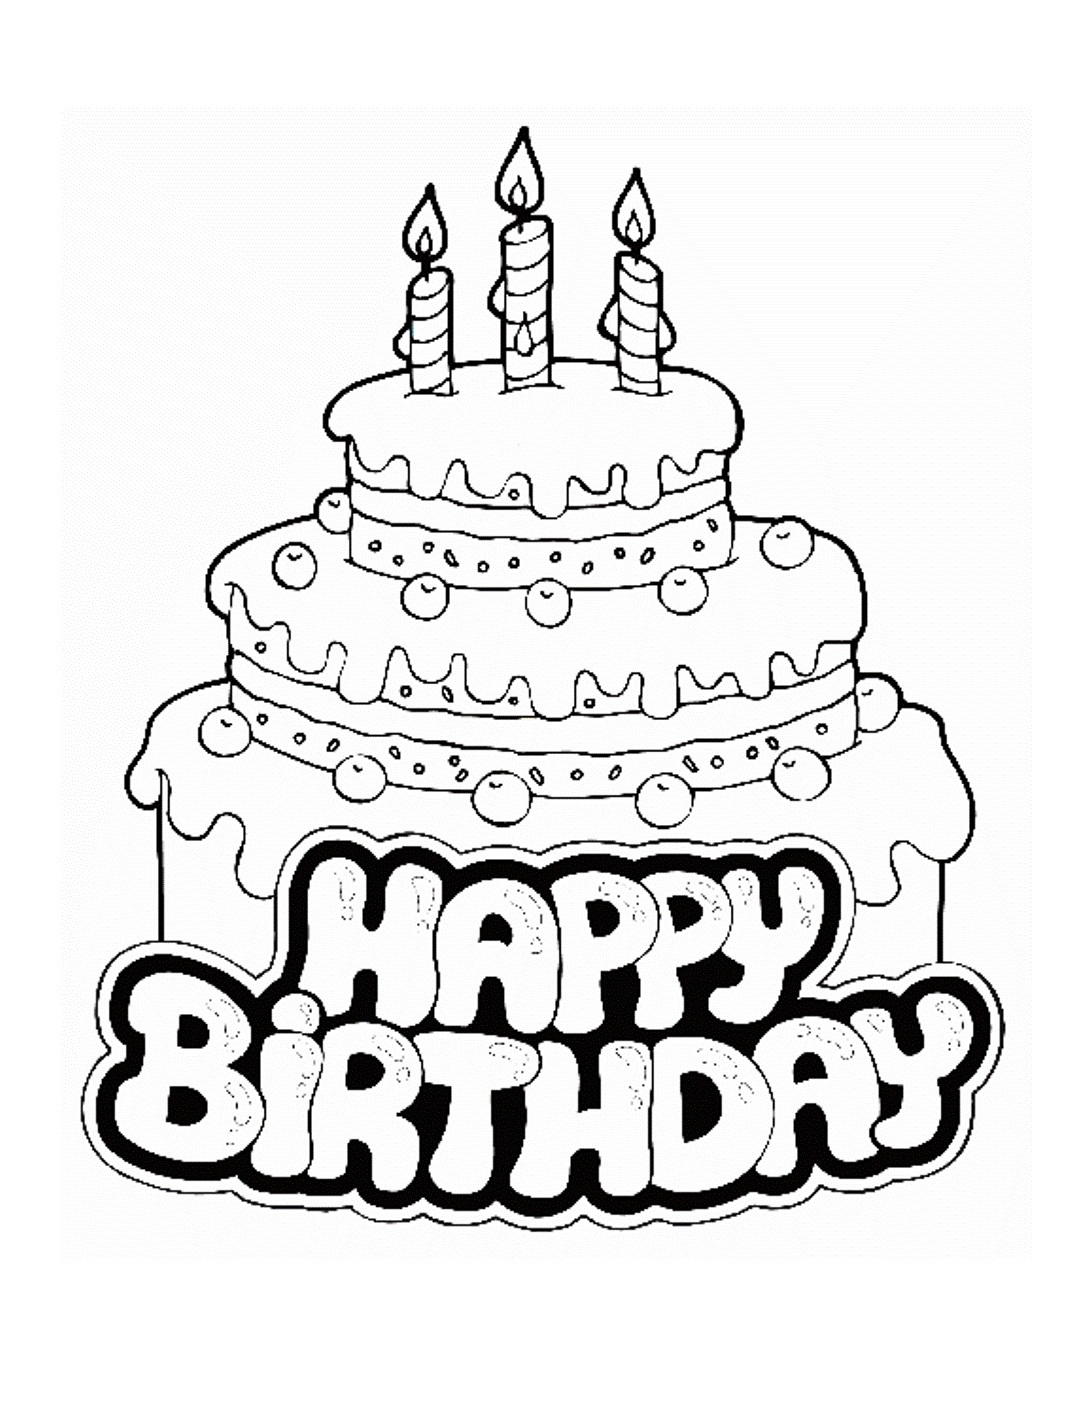 birthday cake coloring page ; Birthday-Cake-Coloring-Pages-Printable